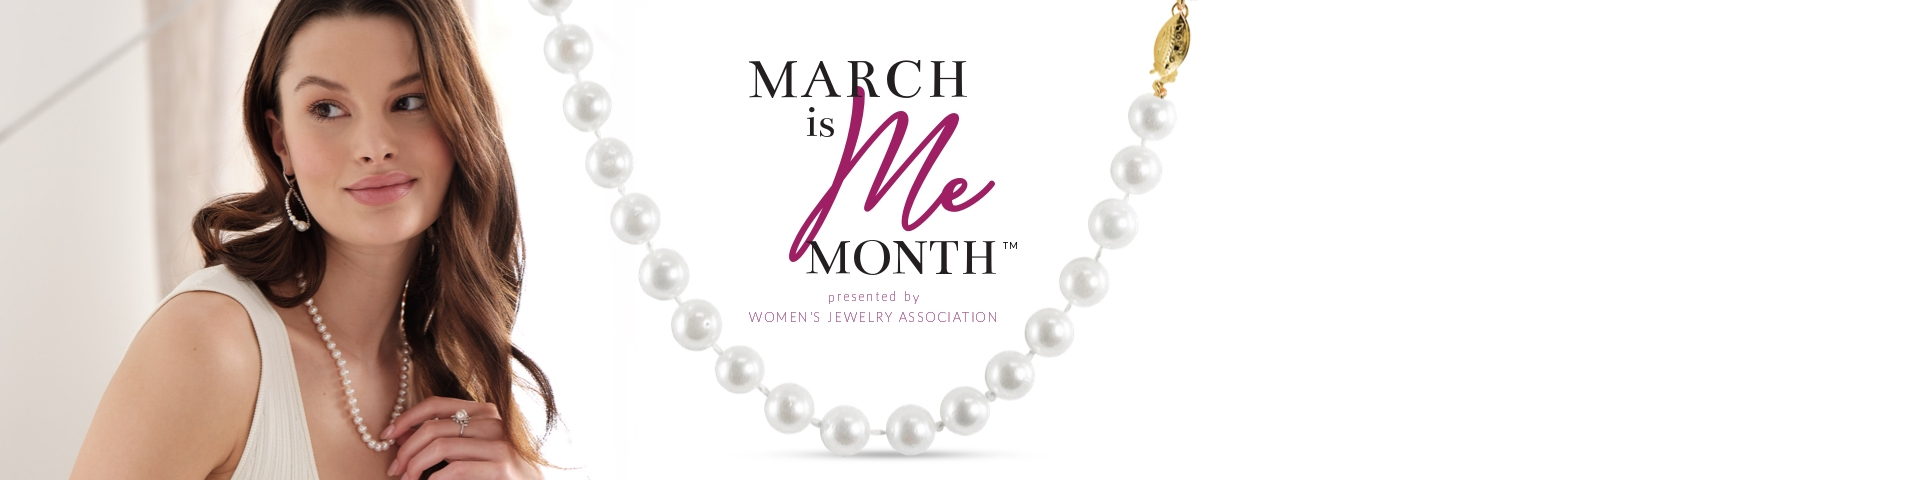 March is Me Month presented by WOMEN'S JEWELRY ASSOCIATION. Woman model wearing cultured pearl jewelry from Jared.